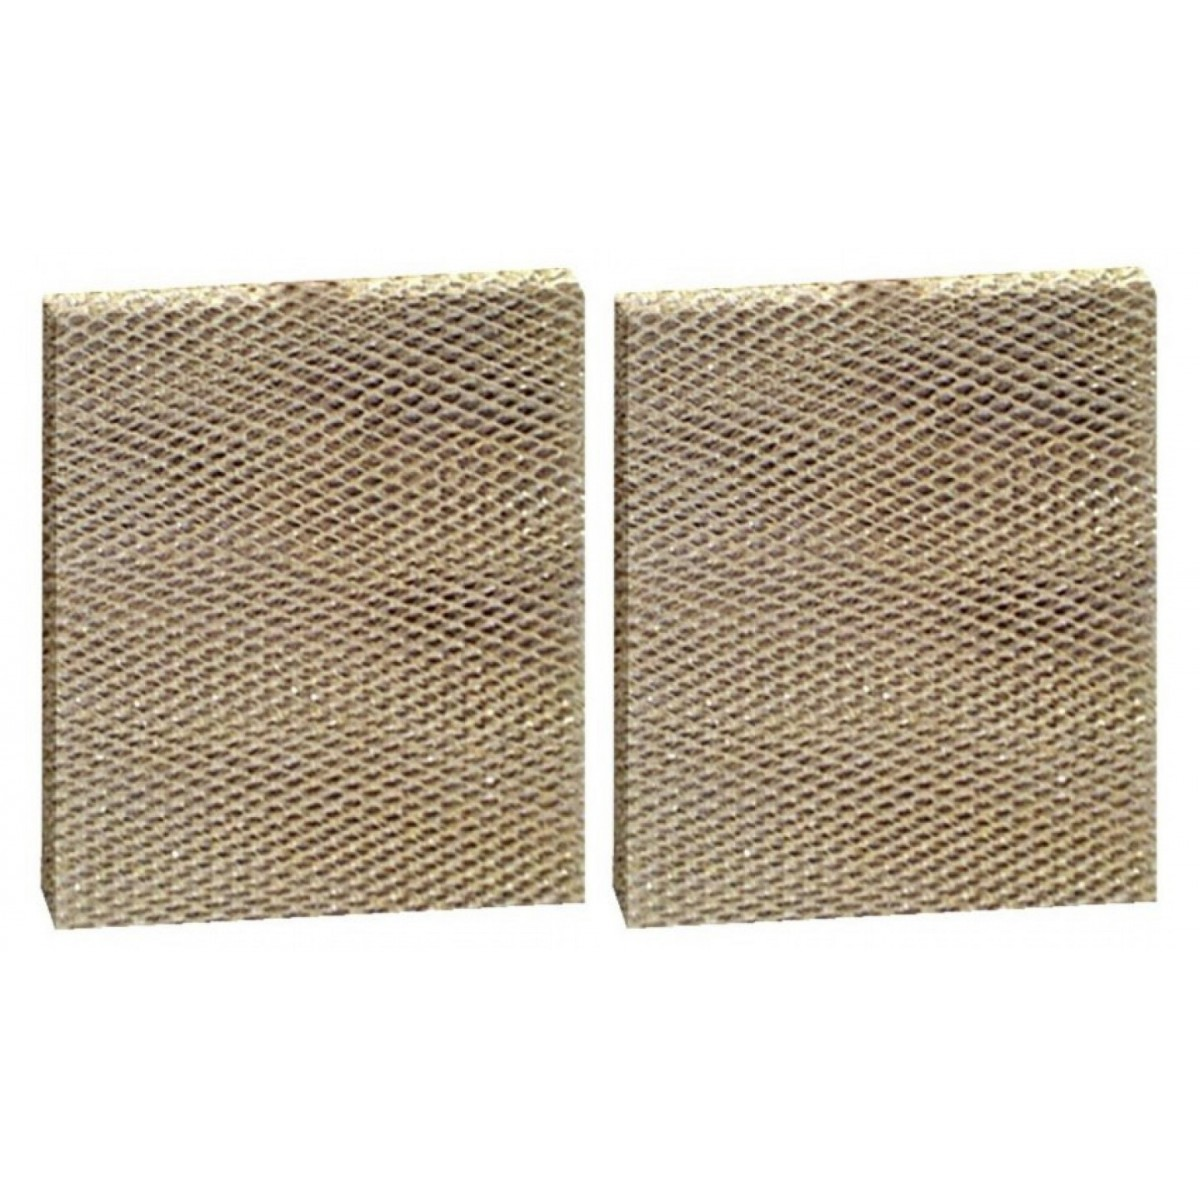 Honeywell HC26A1008 Replacement Humidifier Pad DiscountFilterStore.com #463220